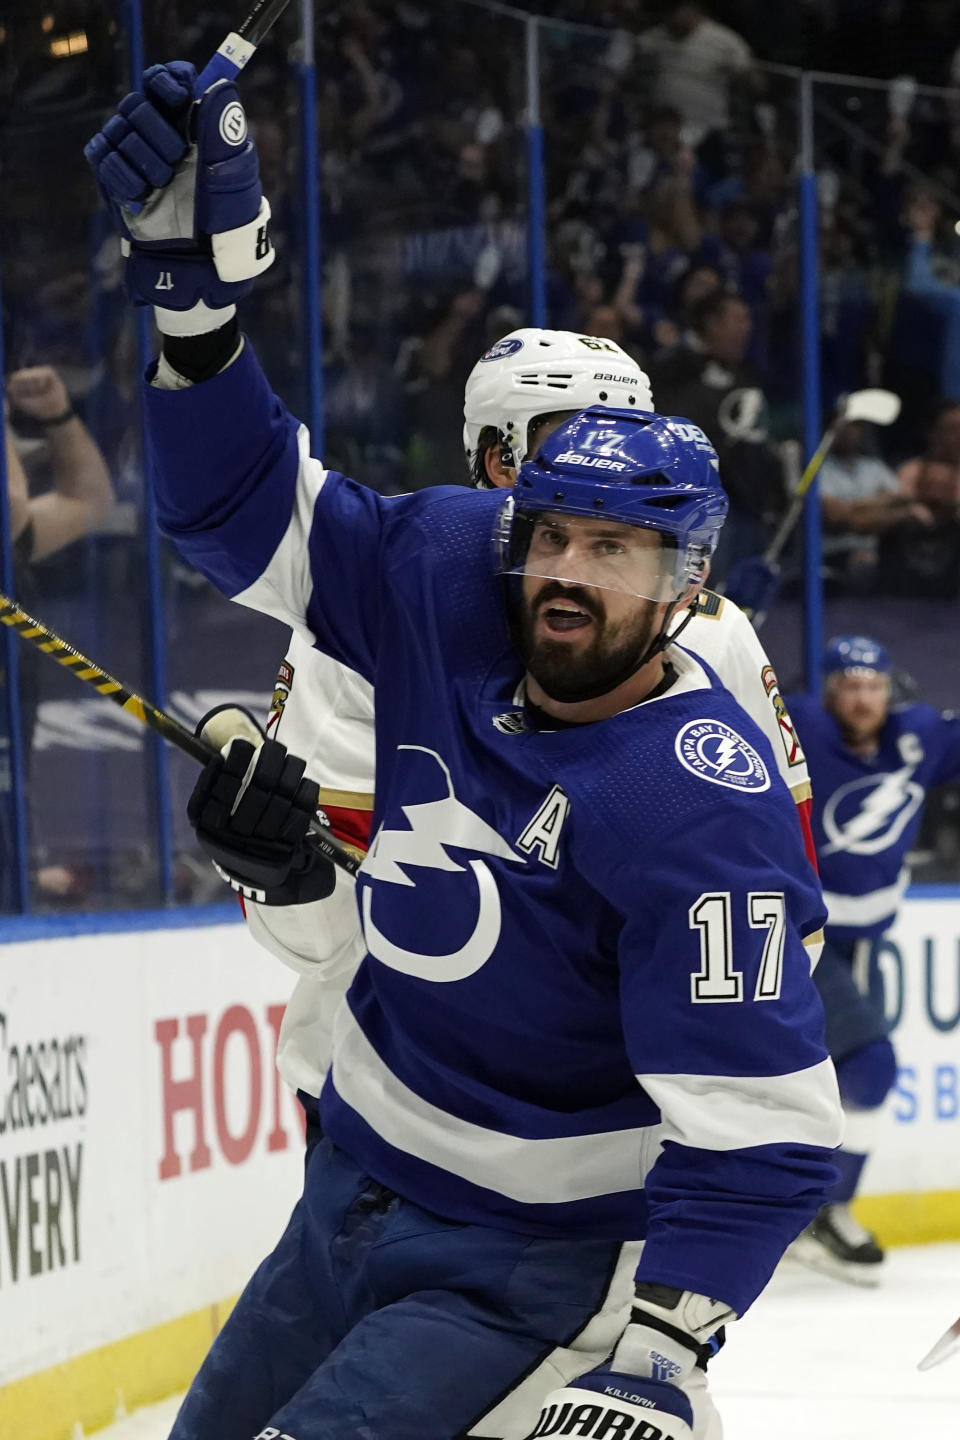 Tampa Bay Lightning left wing Alex Killorn (17) celebrates his goal against the Florida Panthers during the second period in Game 4 of an NHL hockey Stanley Cup first-round playoff series Saturday, May 22, 2021, in Tampa, Fla. (AP Photo/Chris O'Meara)